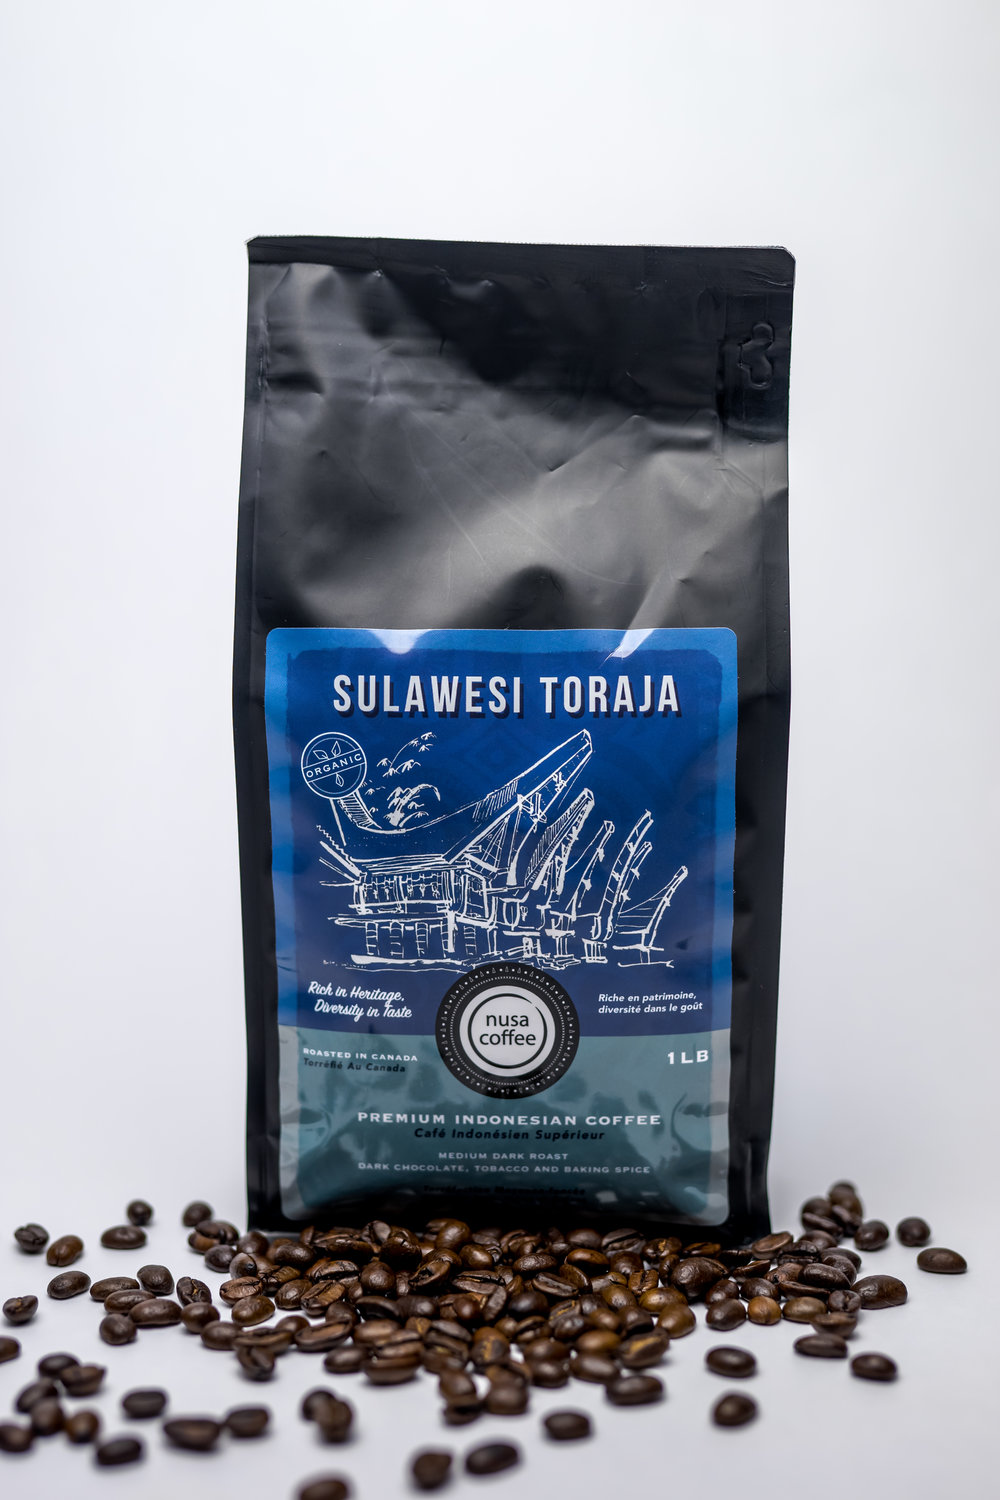 Sulawesi Toraja - Roasting Profile: Medium Dark - you taste most of roasted flavour (75%) with 25% of greens.Origin: Toraja Highlands is situated in Central Sulawesi. Above 1400 metre elevation, the coffee plants are shade-grown with cacao, vanilla and other fruit trees were grown in between. The rich nutrients of volcanic soil also enhances the flavour of the beans. Earthy. Smooth. Balanced.Processing Method: full wash - this is the widely accepted method for most coffee drinkers. It is generally smooth and balanced.